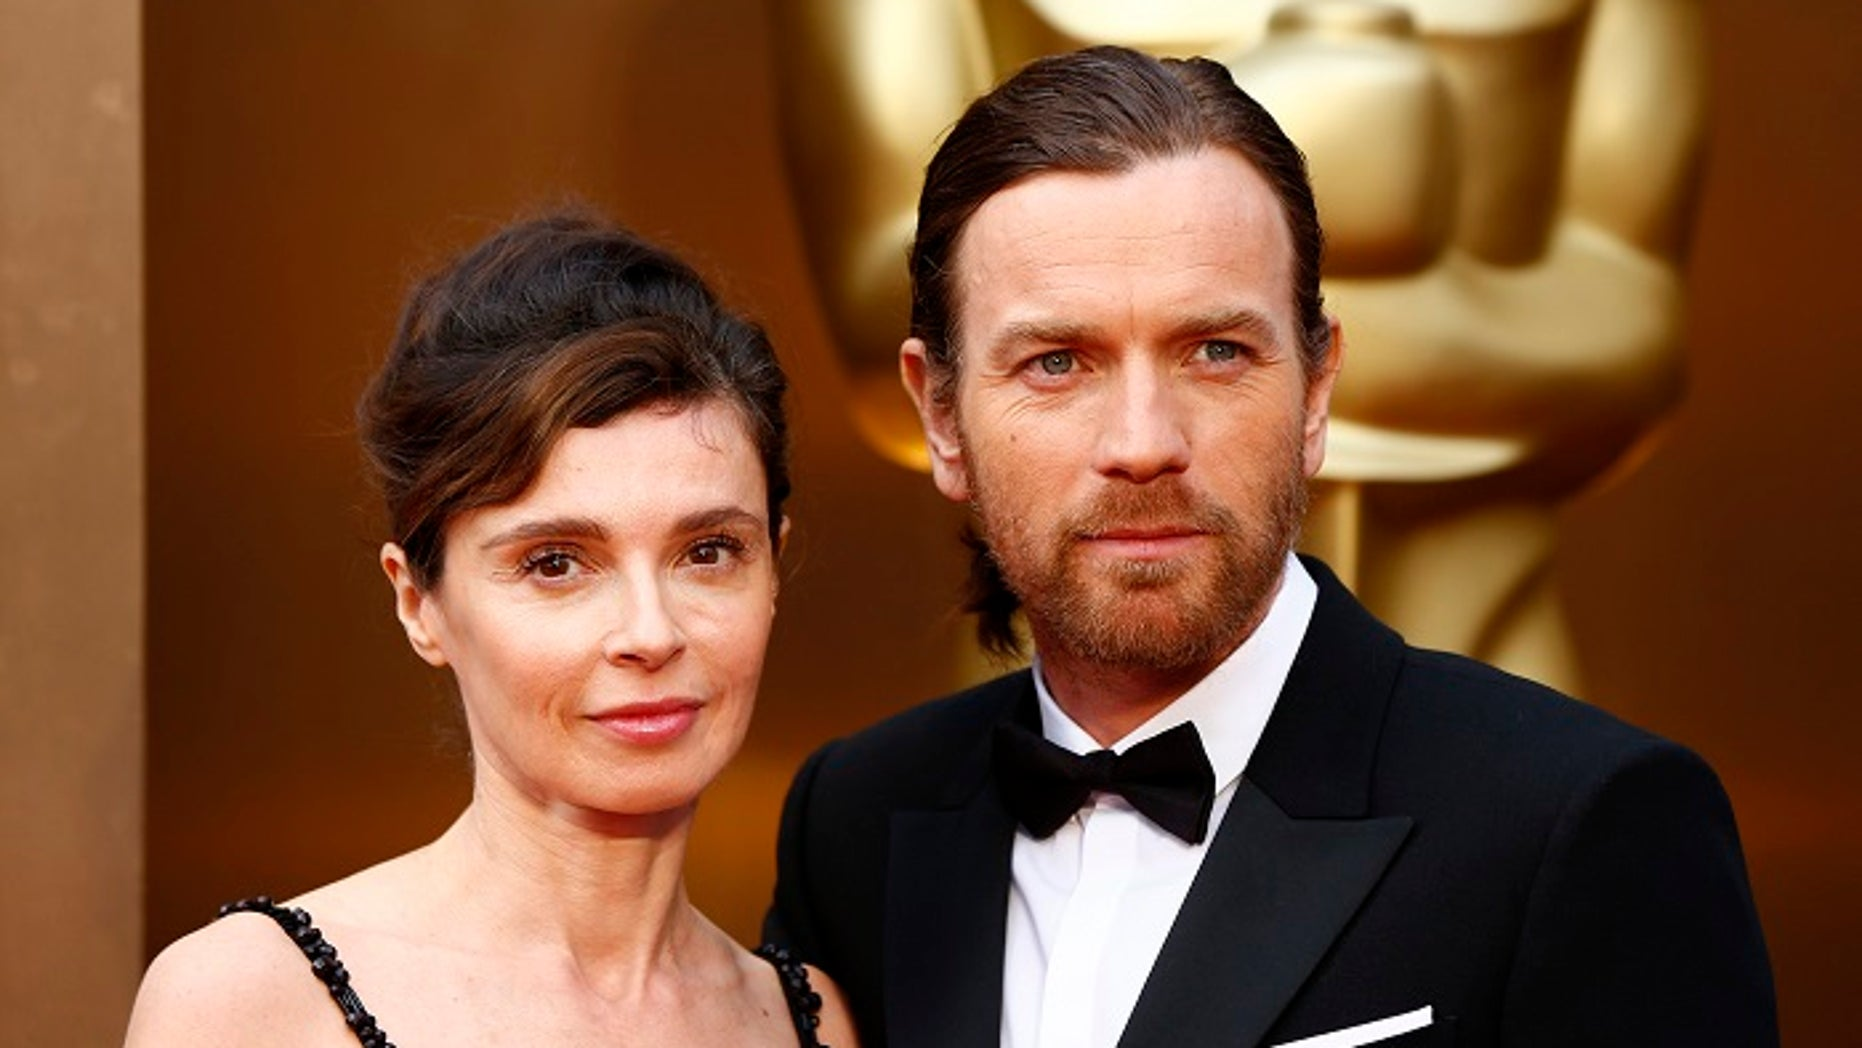 Ewan McGregor has reportedly filed for divorce from wife Eve Mavrakis.